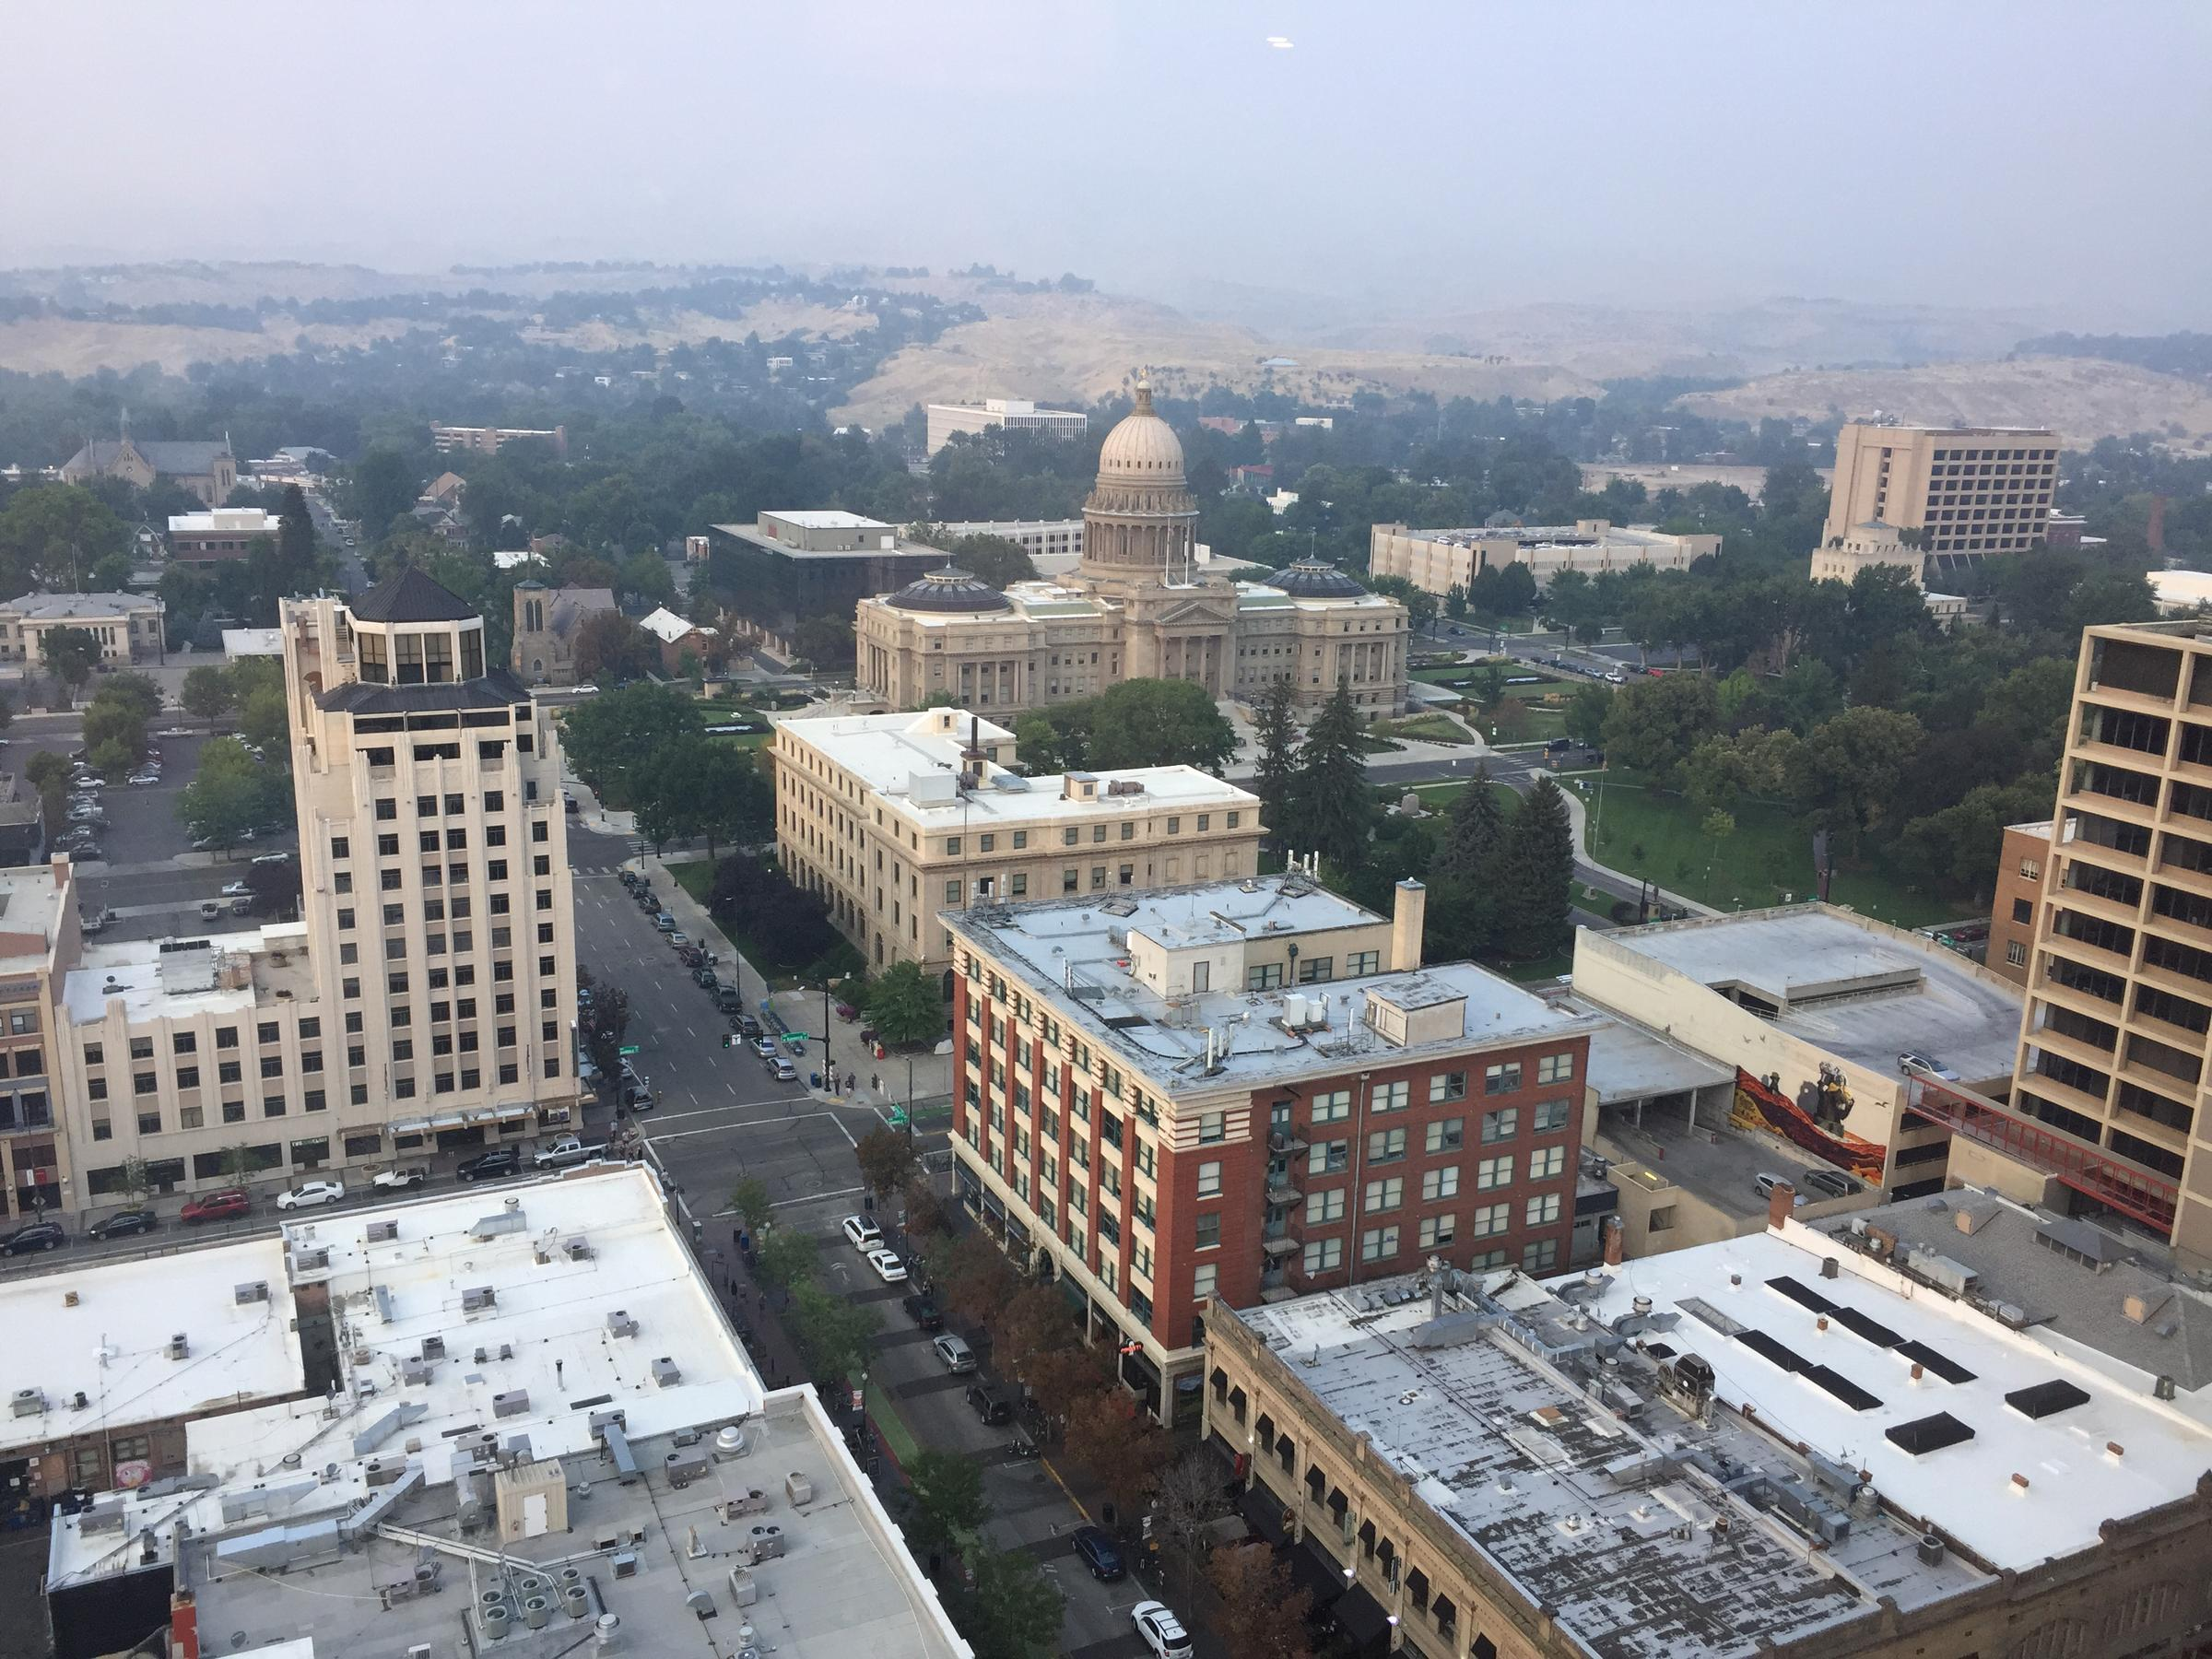 Air quality warnings continue for Pocatello area